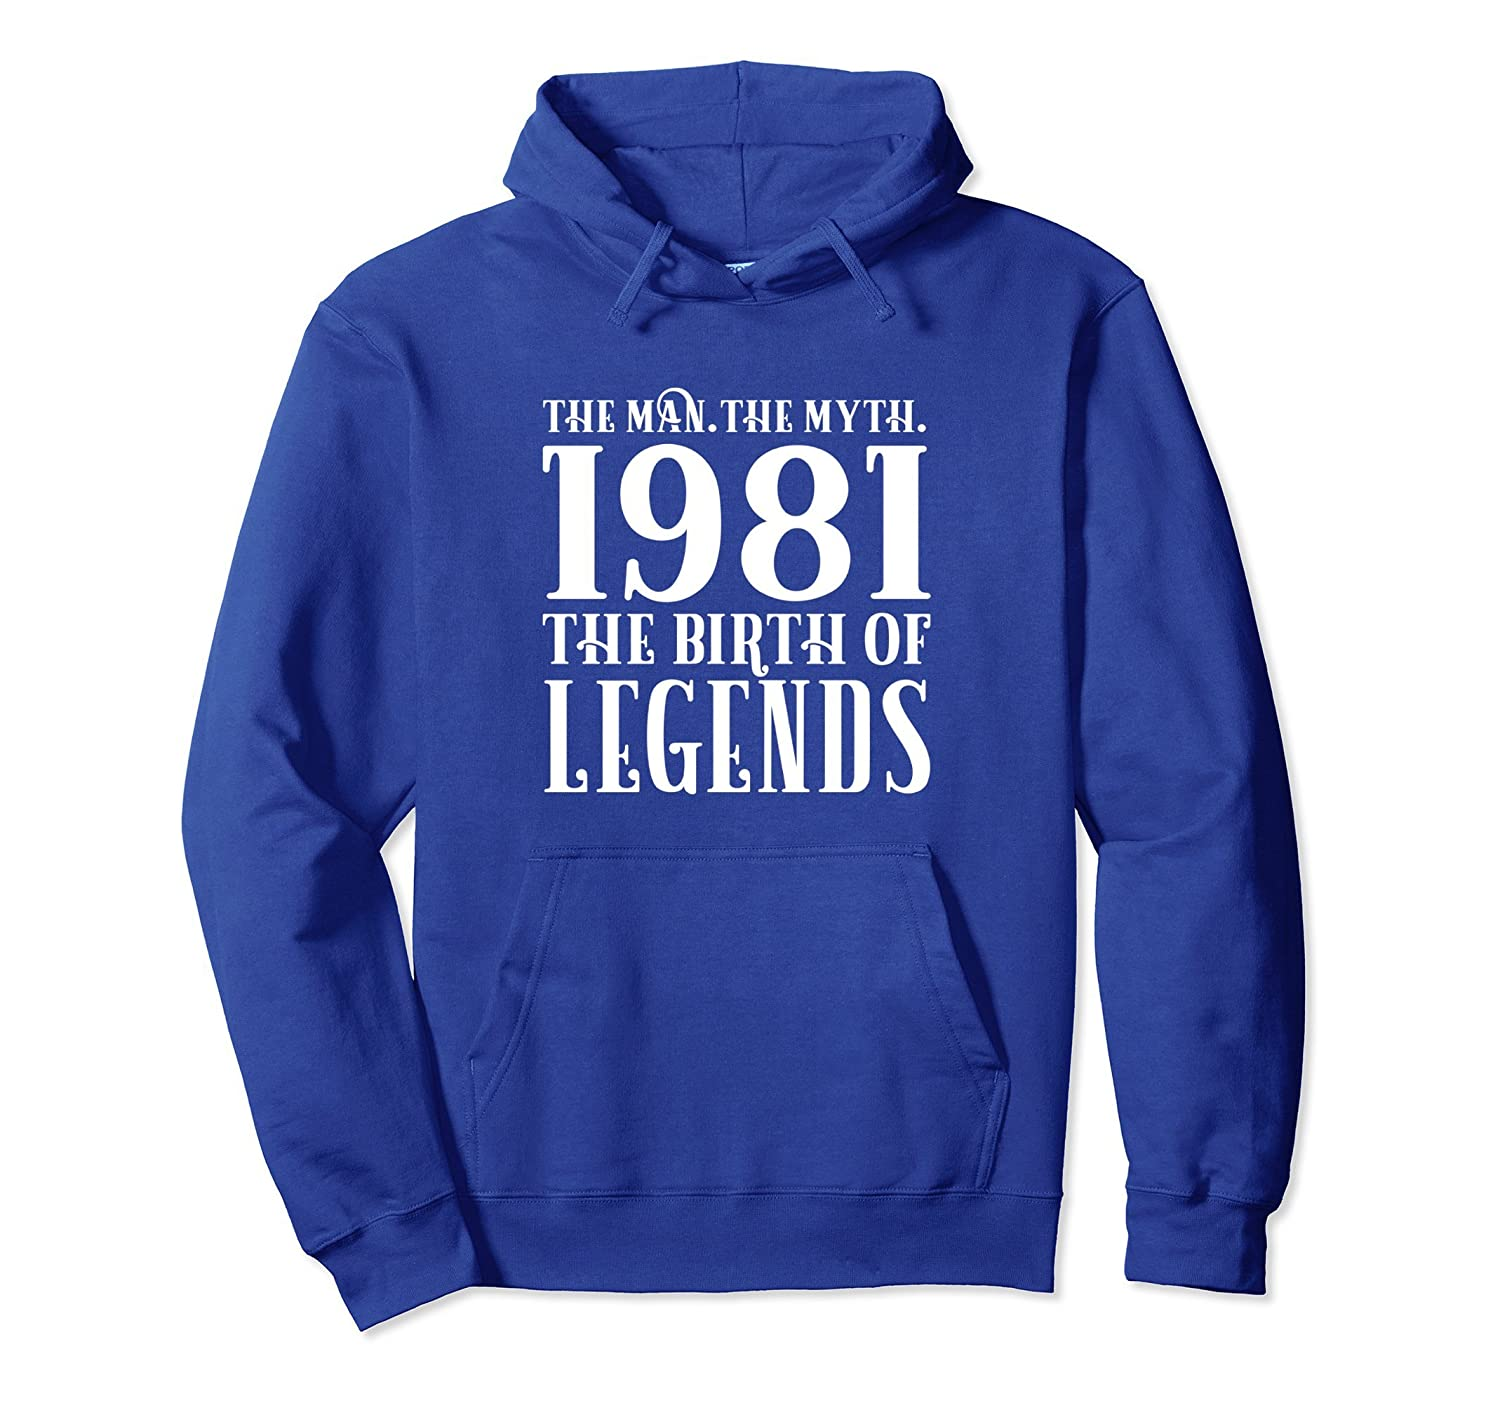 37th Birthday Hoodie Father Gifts Men Uncle Brother Age 37- TPT